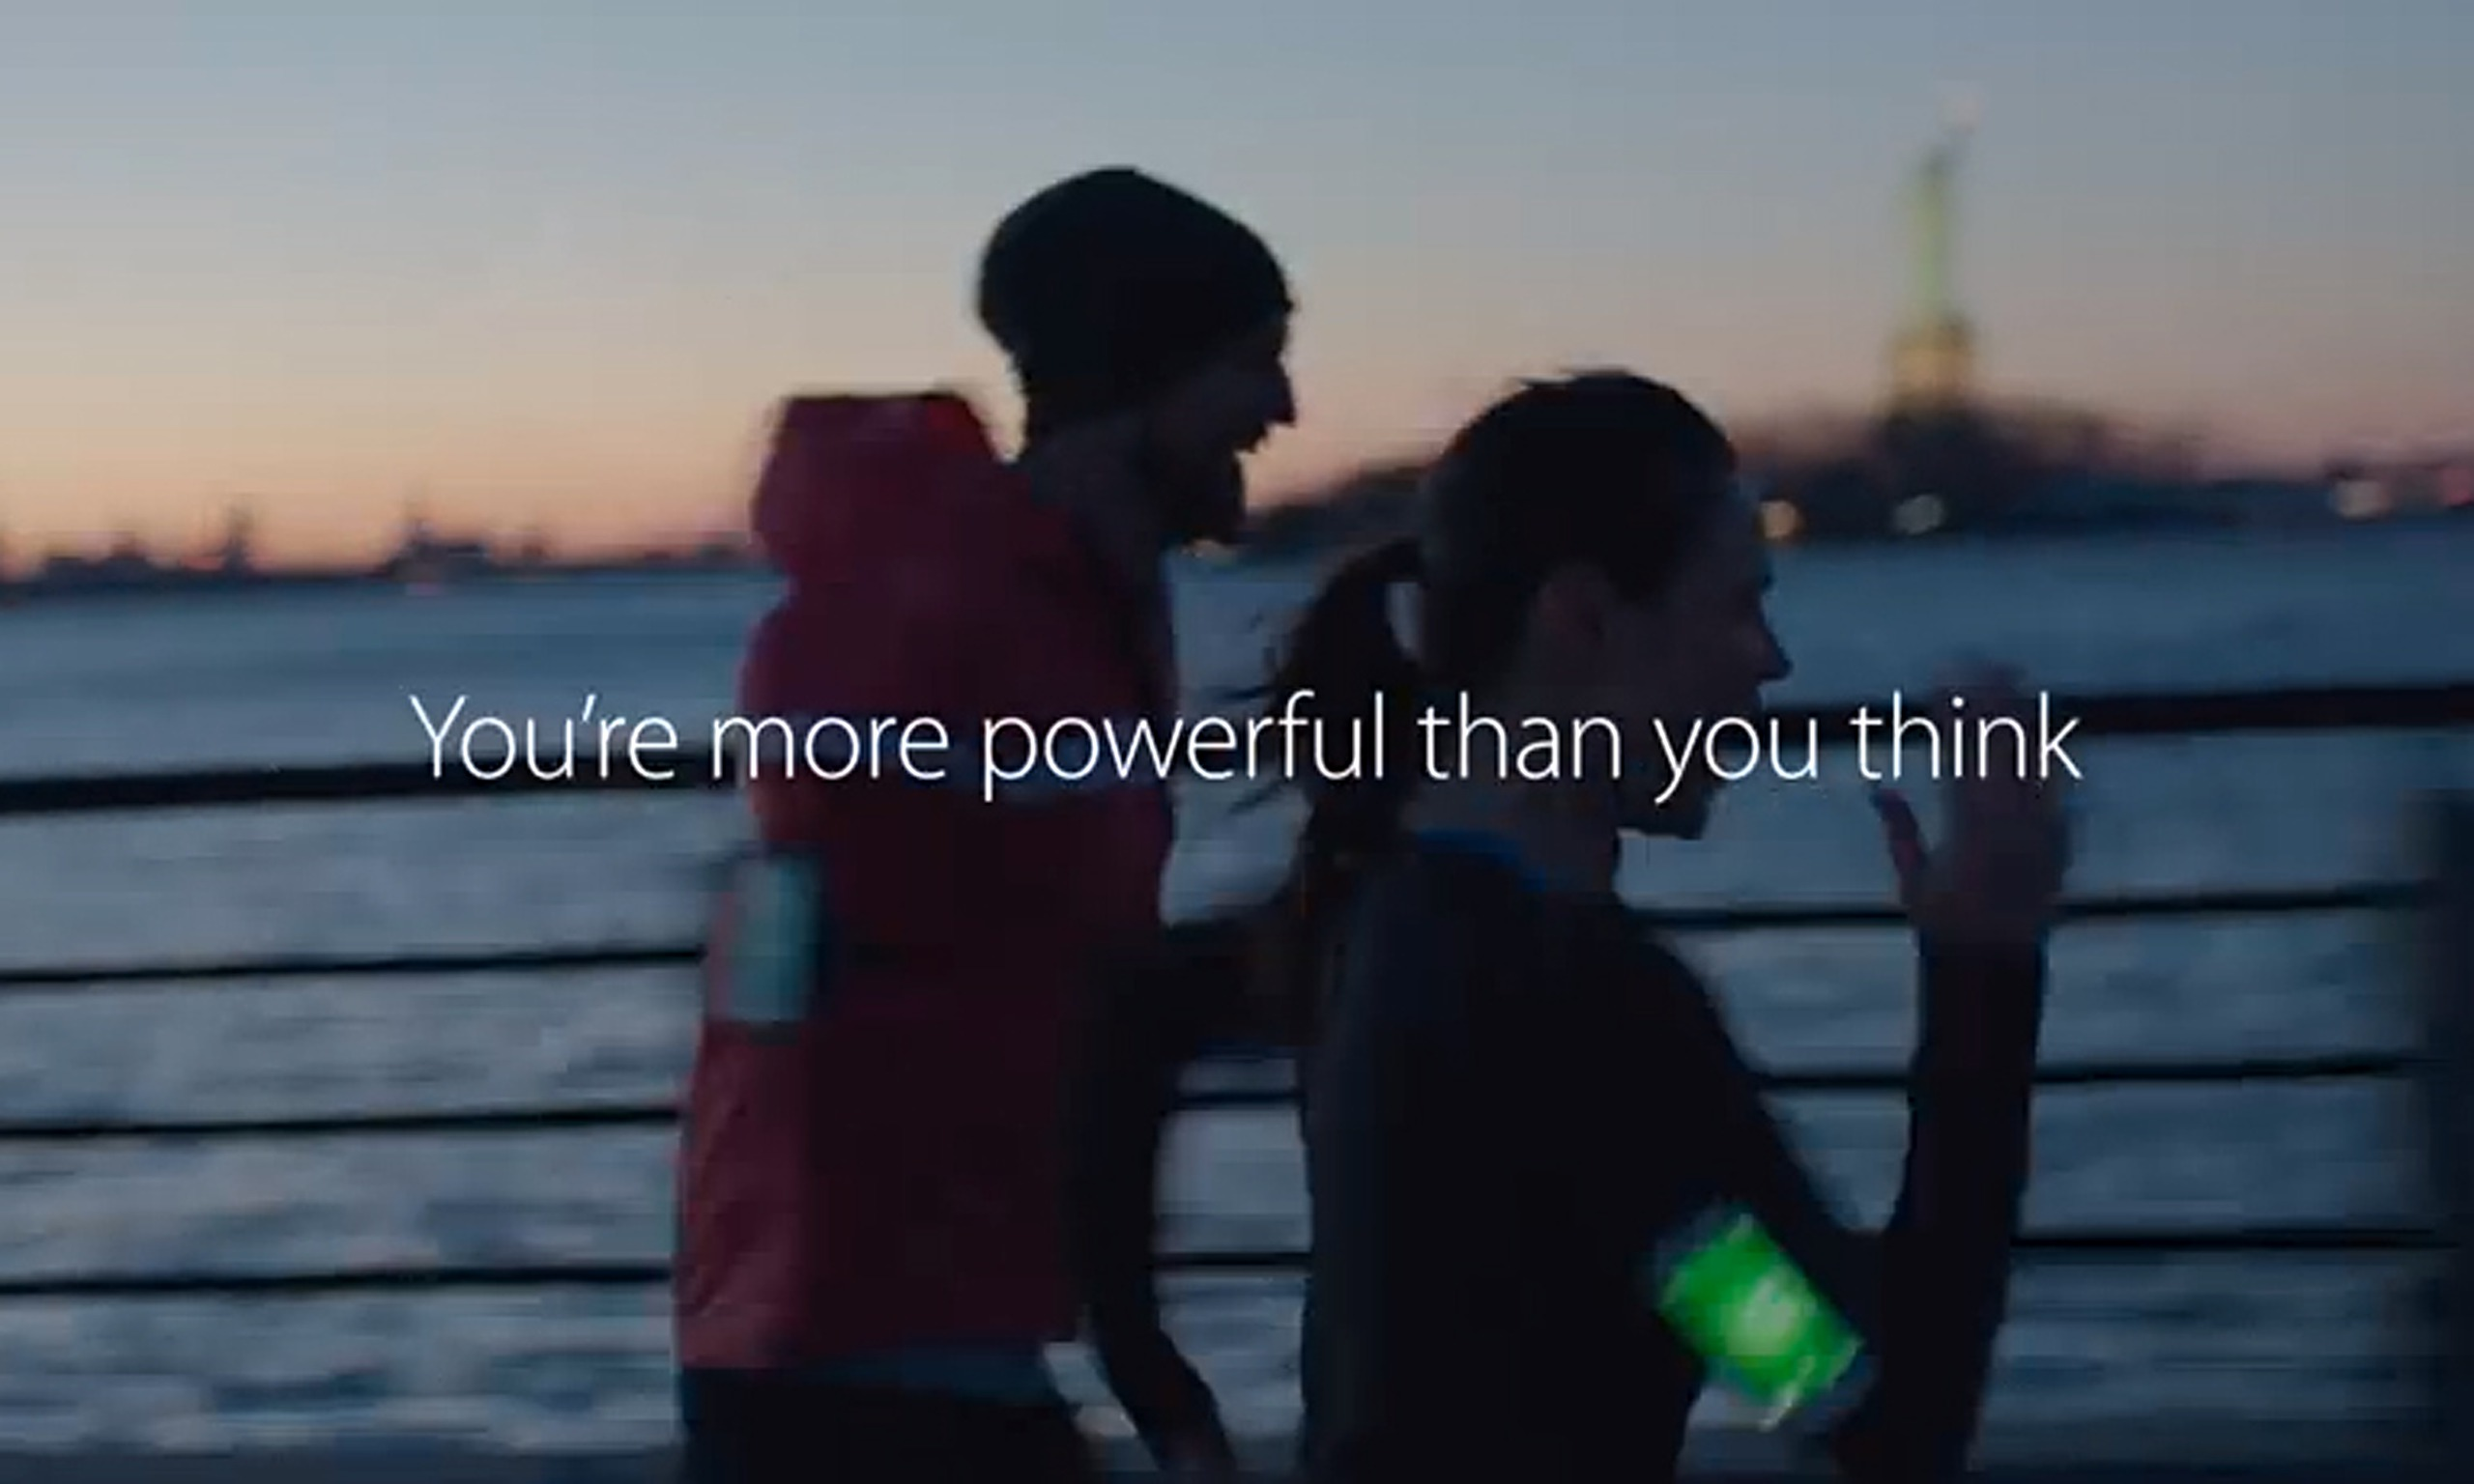 The new Apple iPhone advert narcissistic numpties